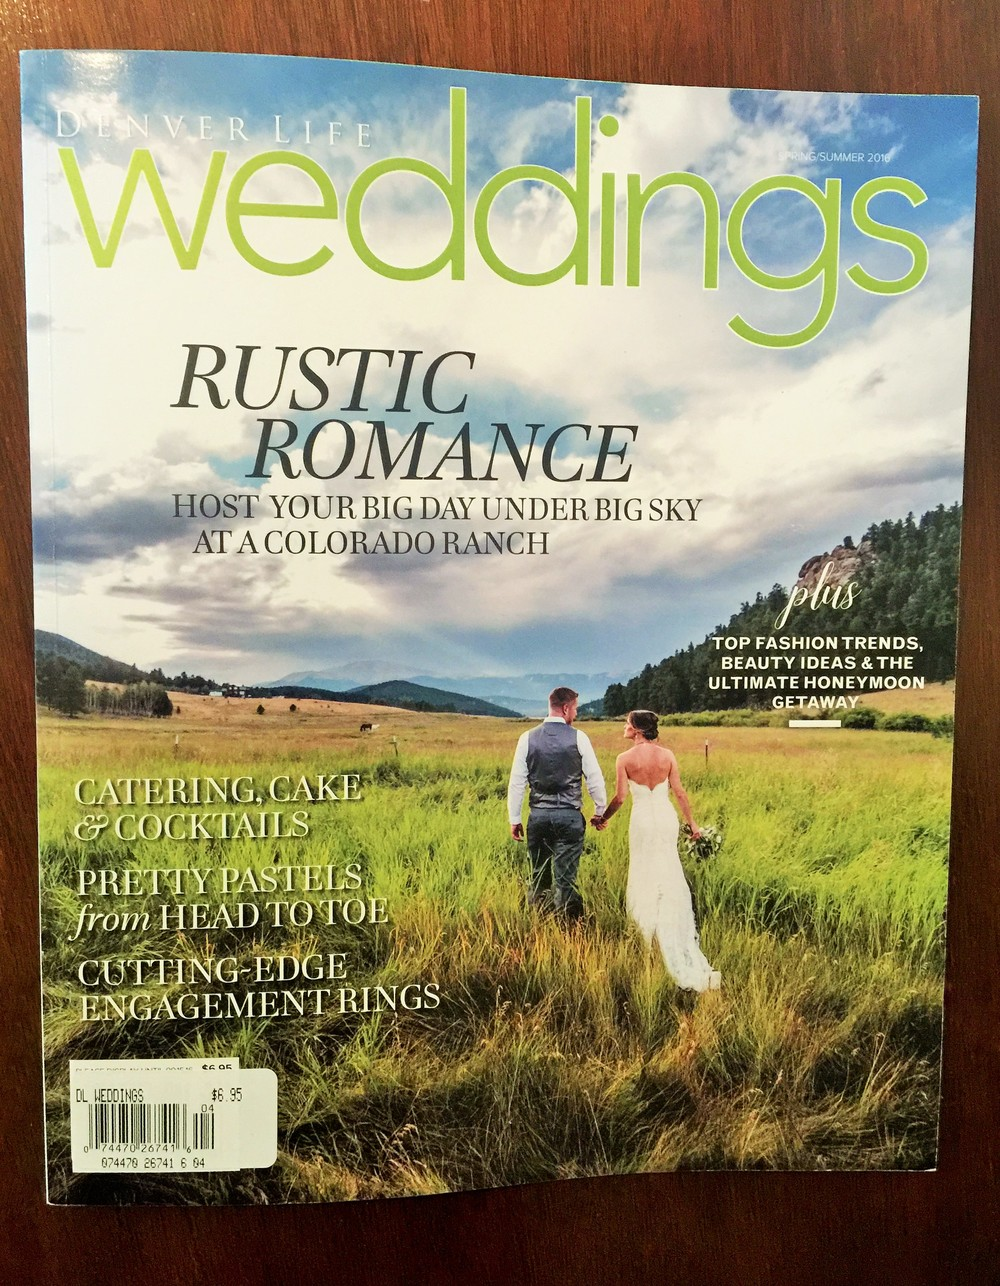 AS SEEN IN DENVER LIFE WEDDINGS, Spring & Summer 2016.